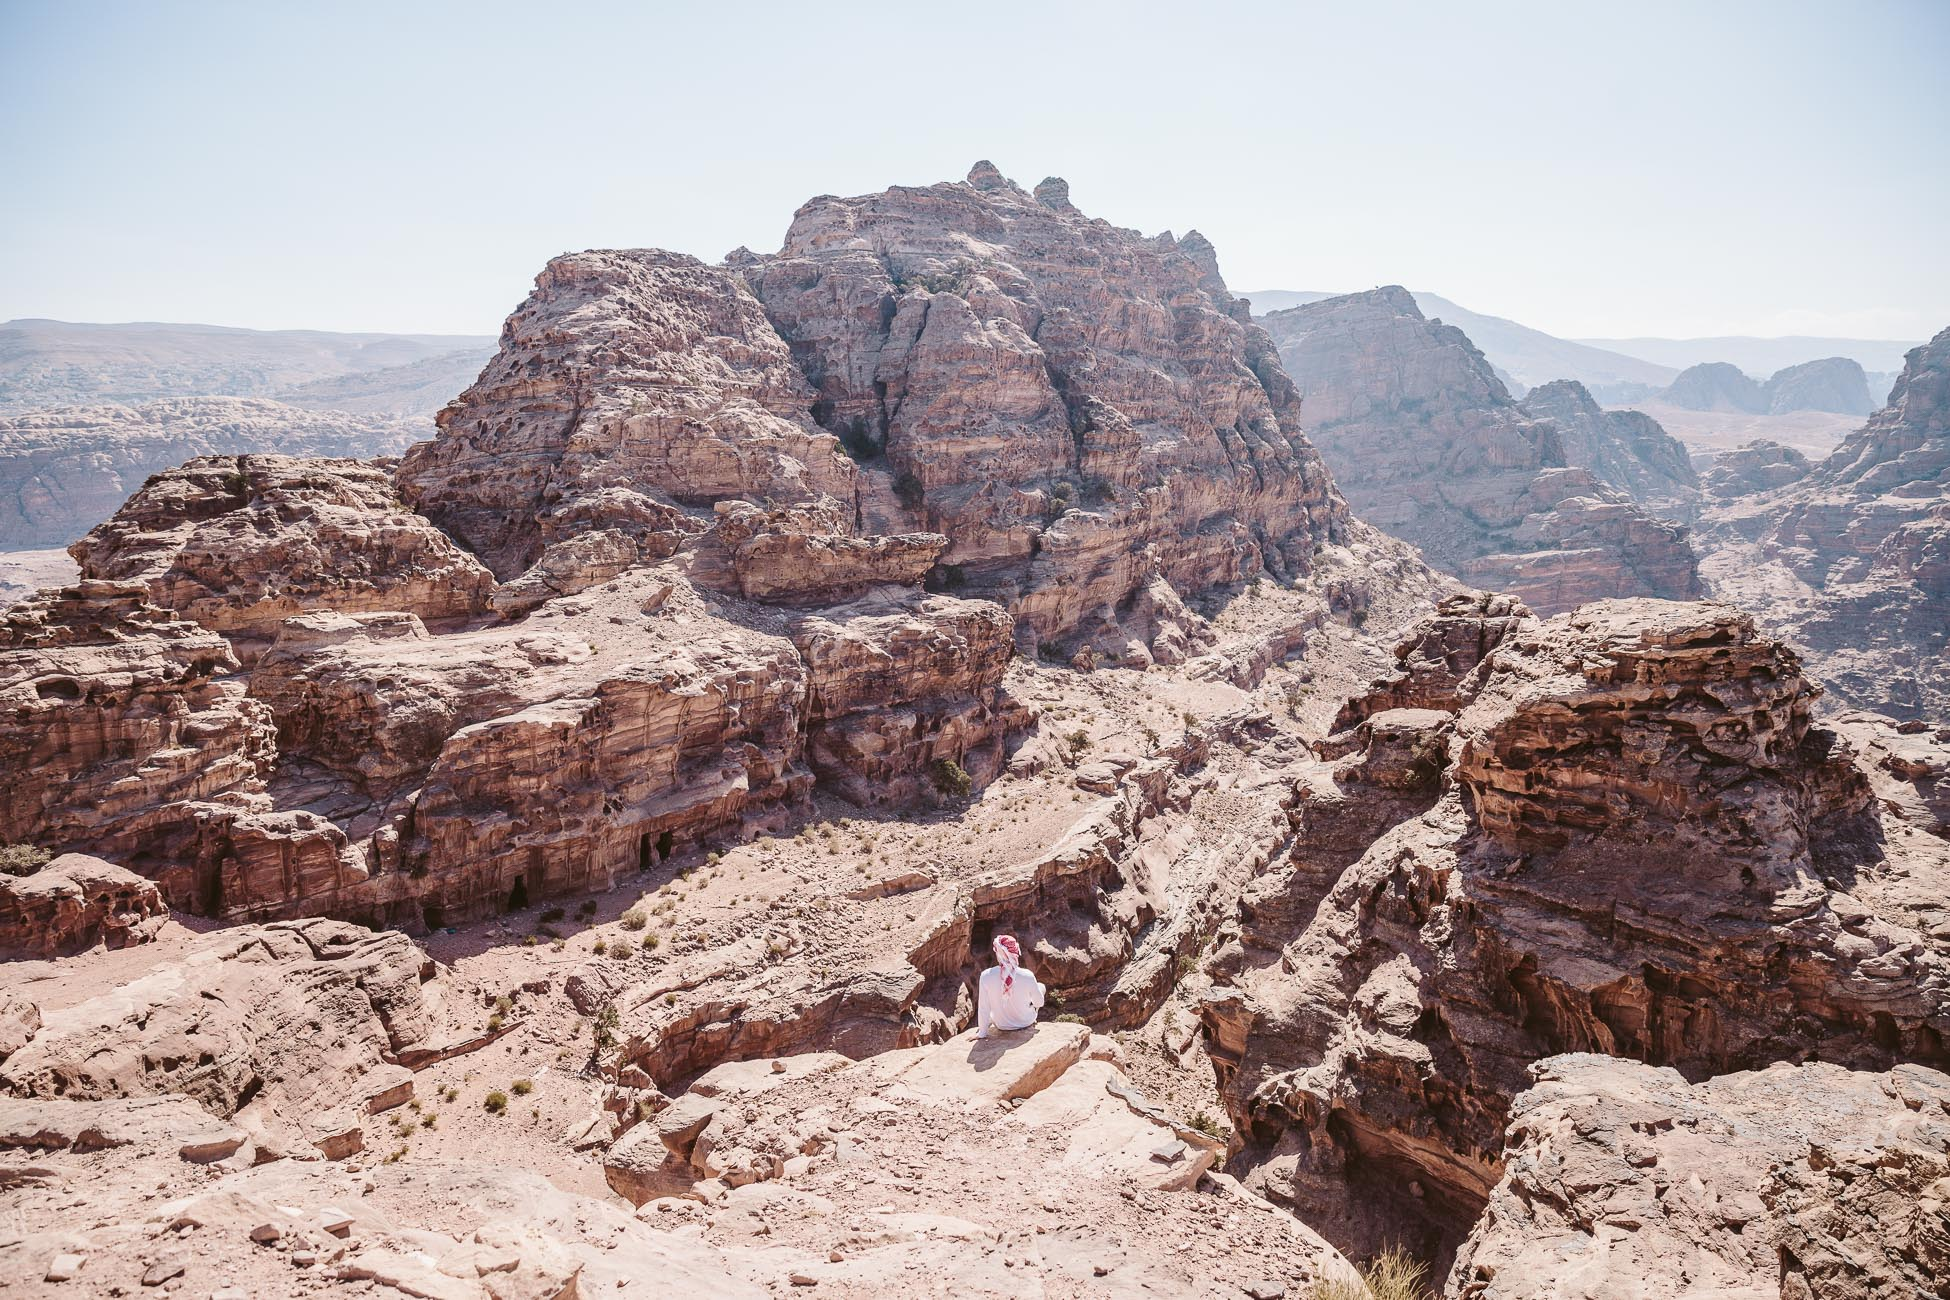 Best view of Petra from the top